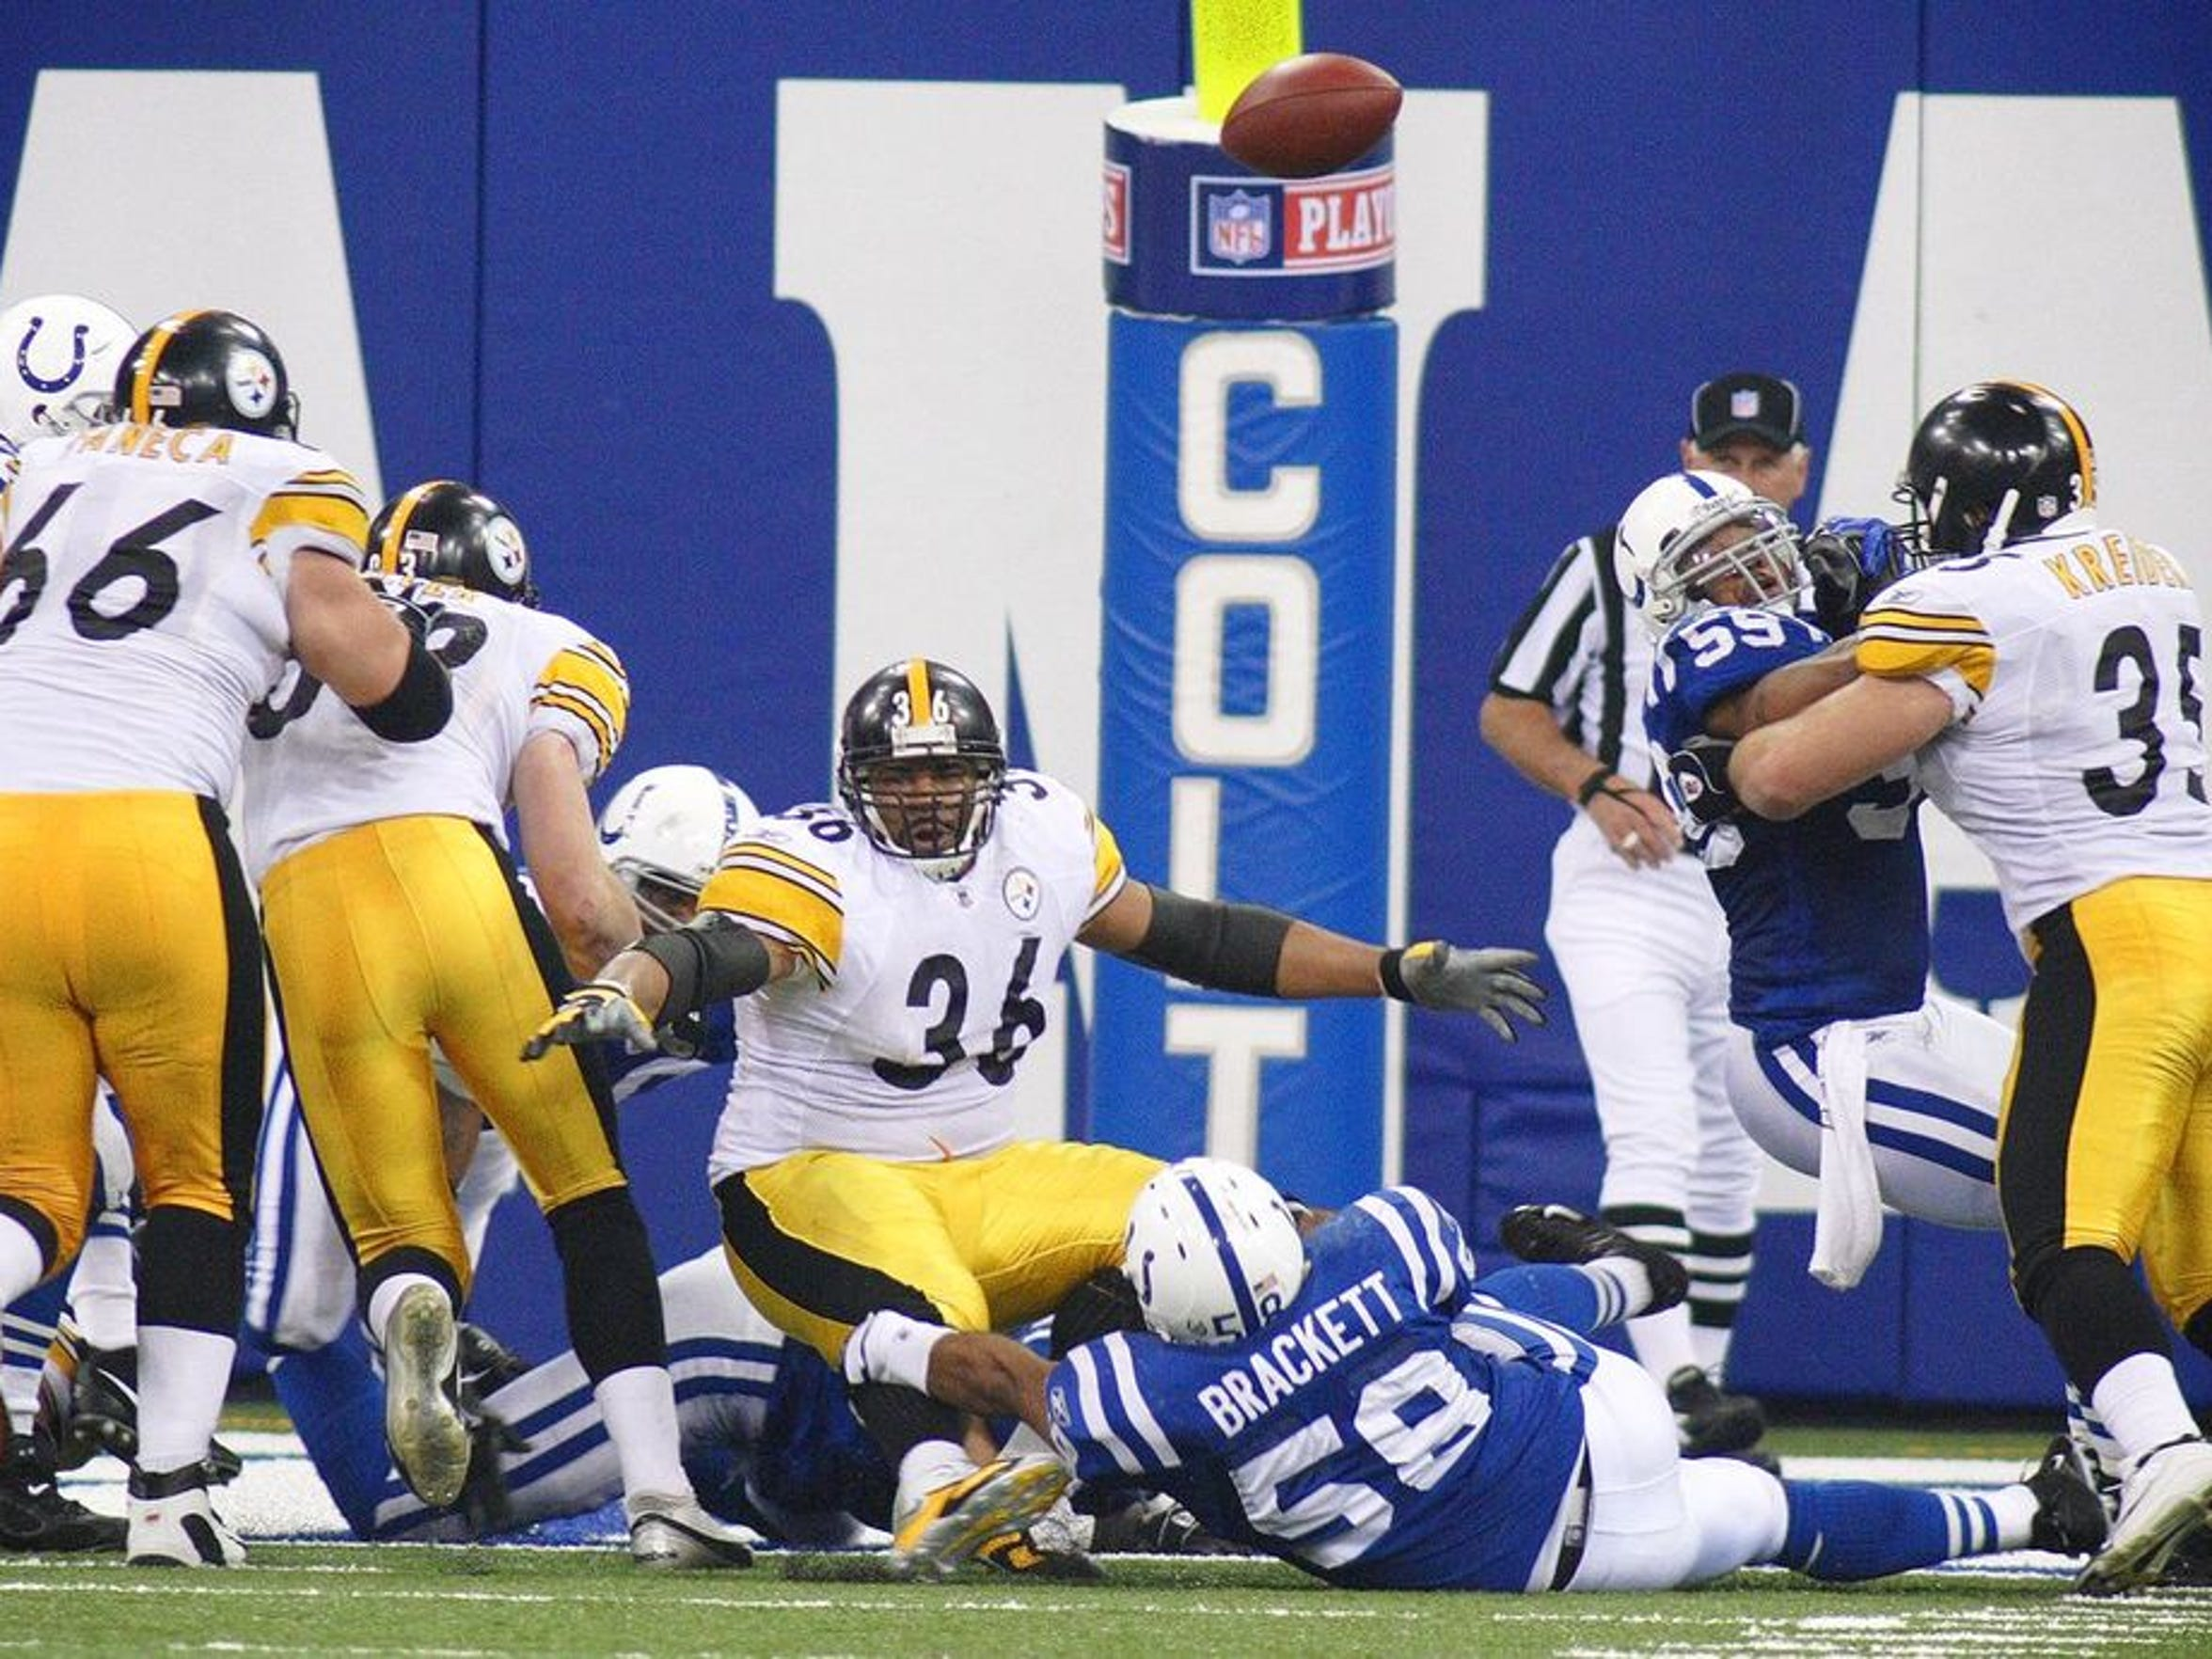 Jerome Bettis, playing his final NFL season, hadn't fumbled once in 136 carries that year.